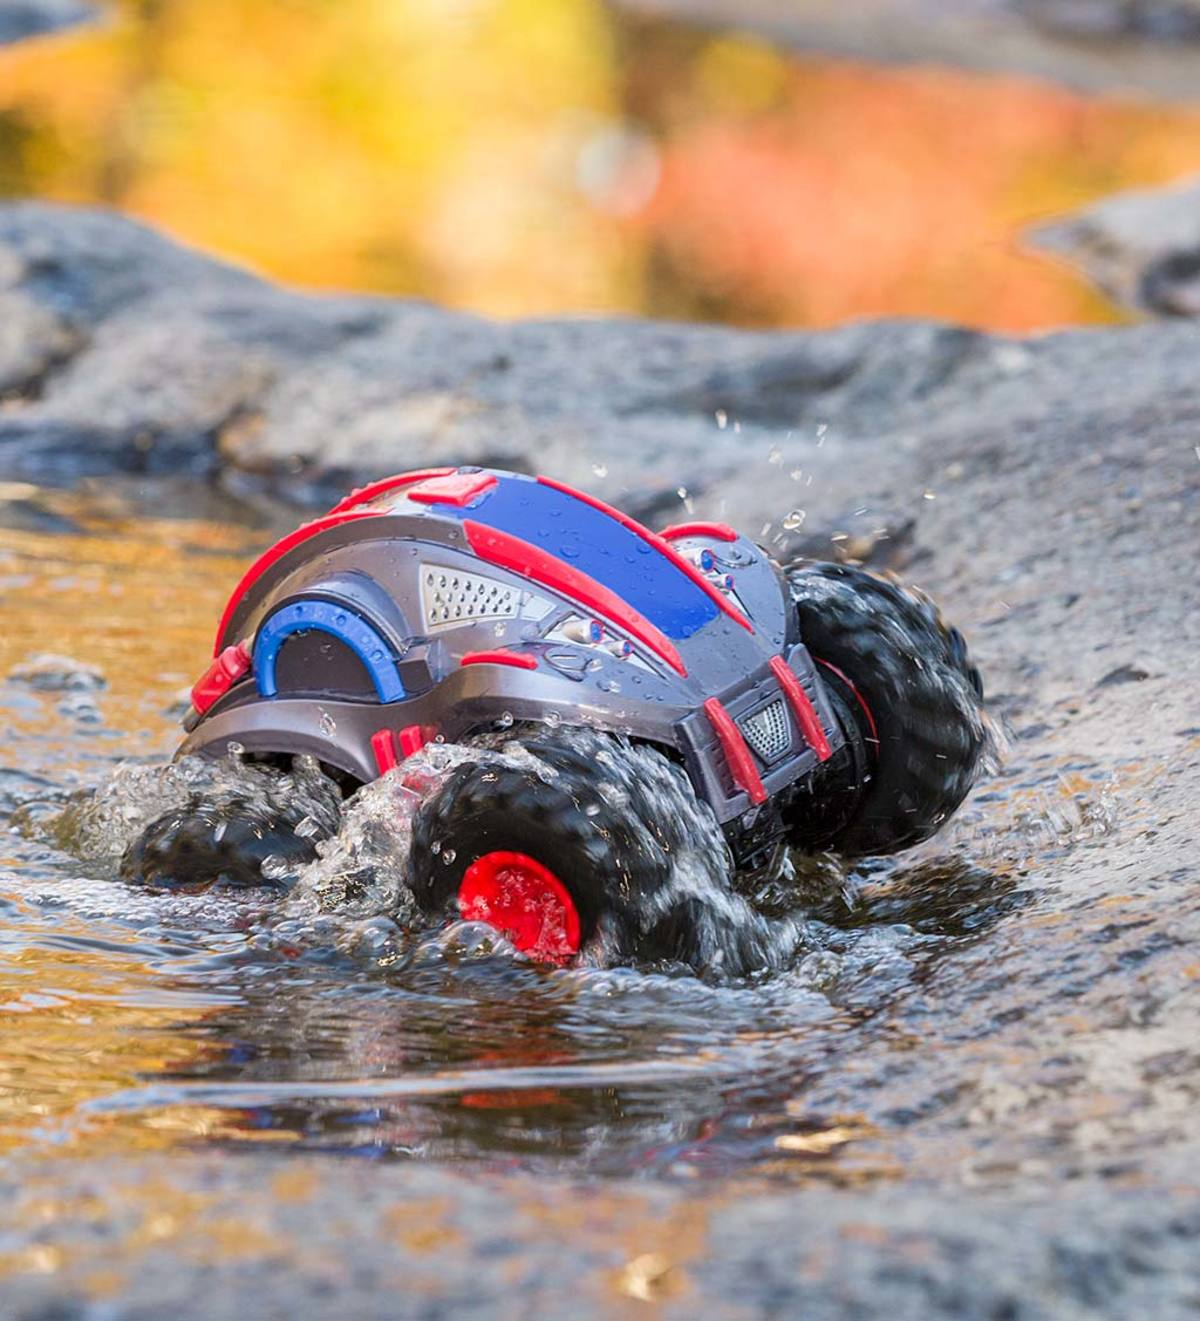 Water Rover All-Terrain Remote Control Car